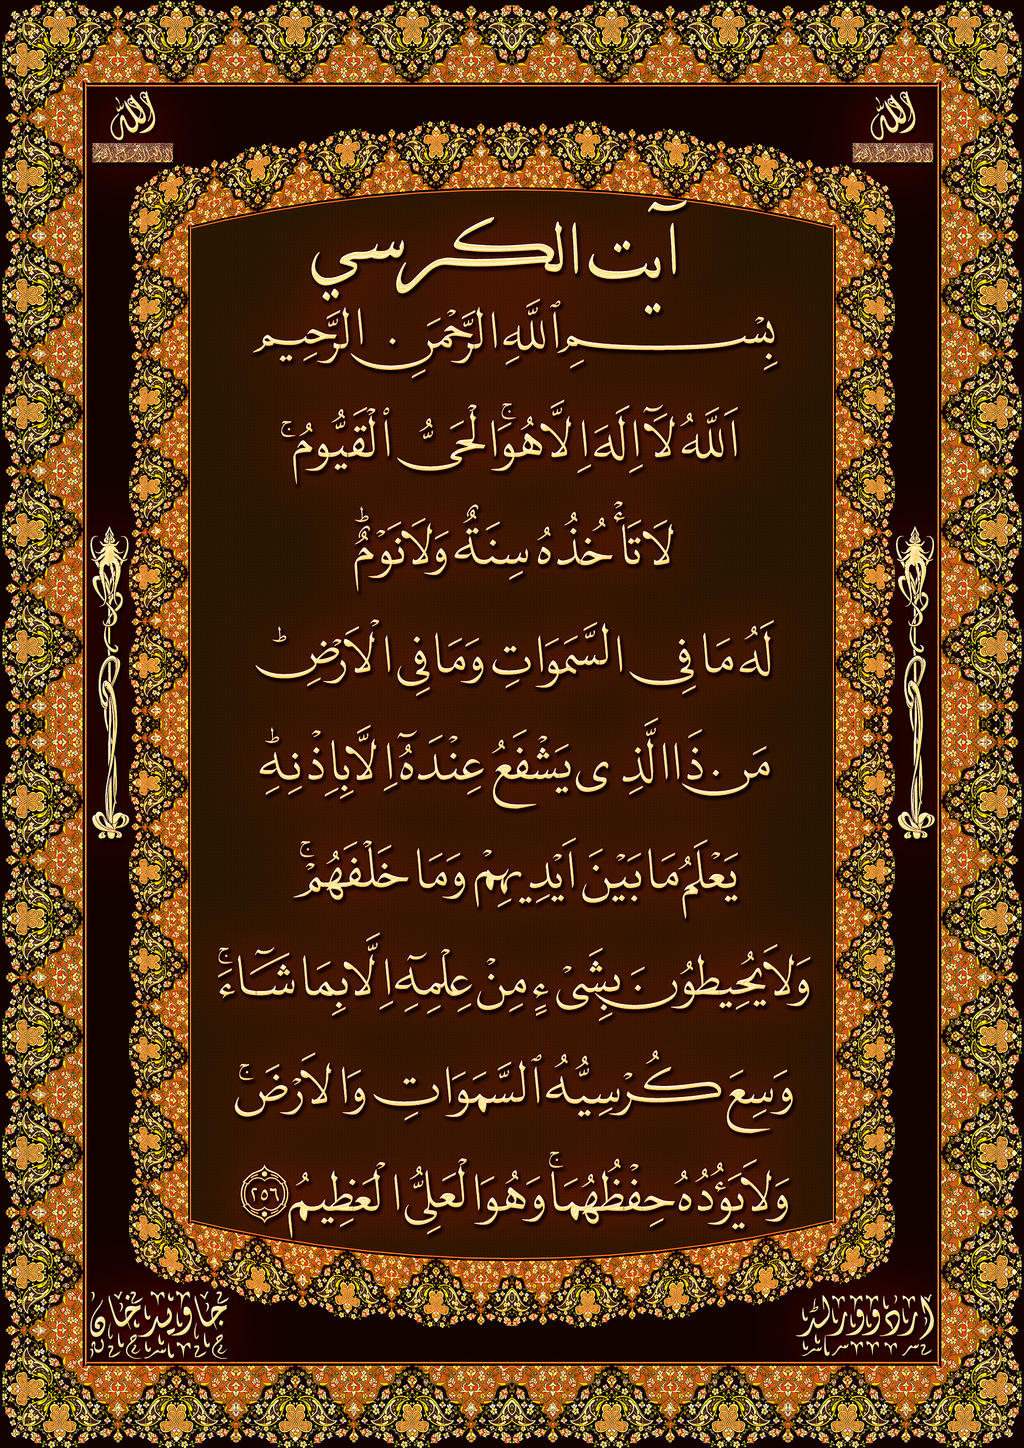 Ayat al kursi urduworld3 by jalalpuri on deviantart Calligraphy ayat